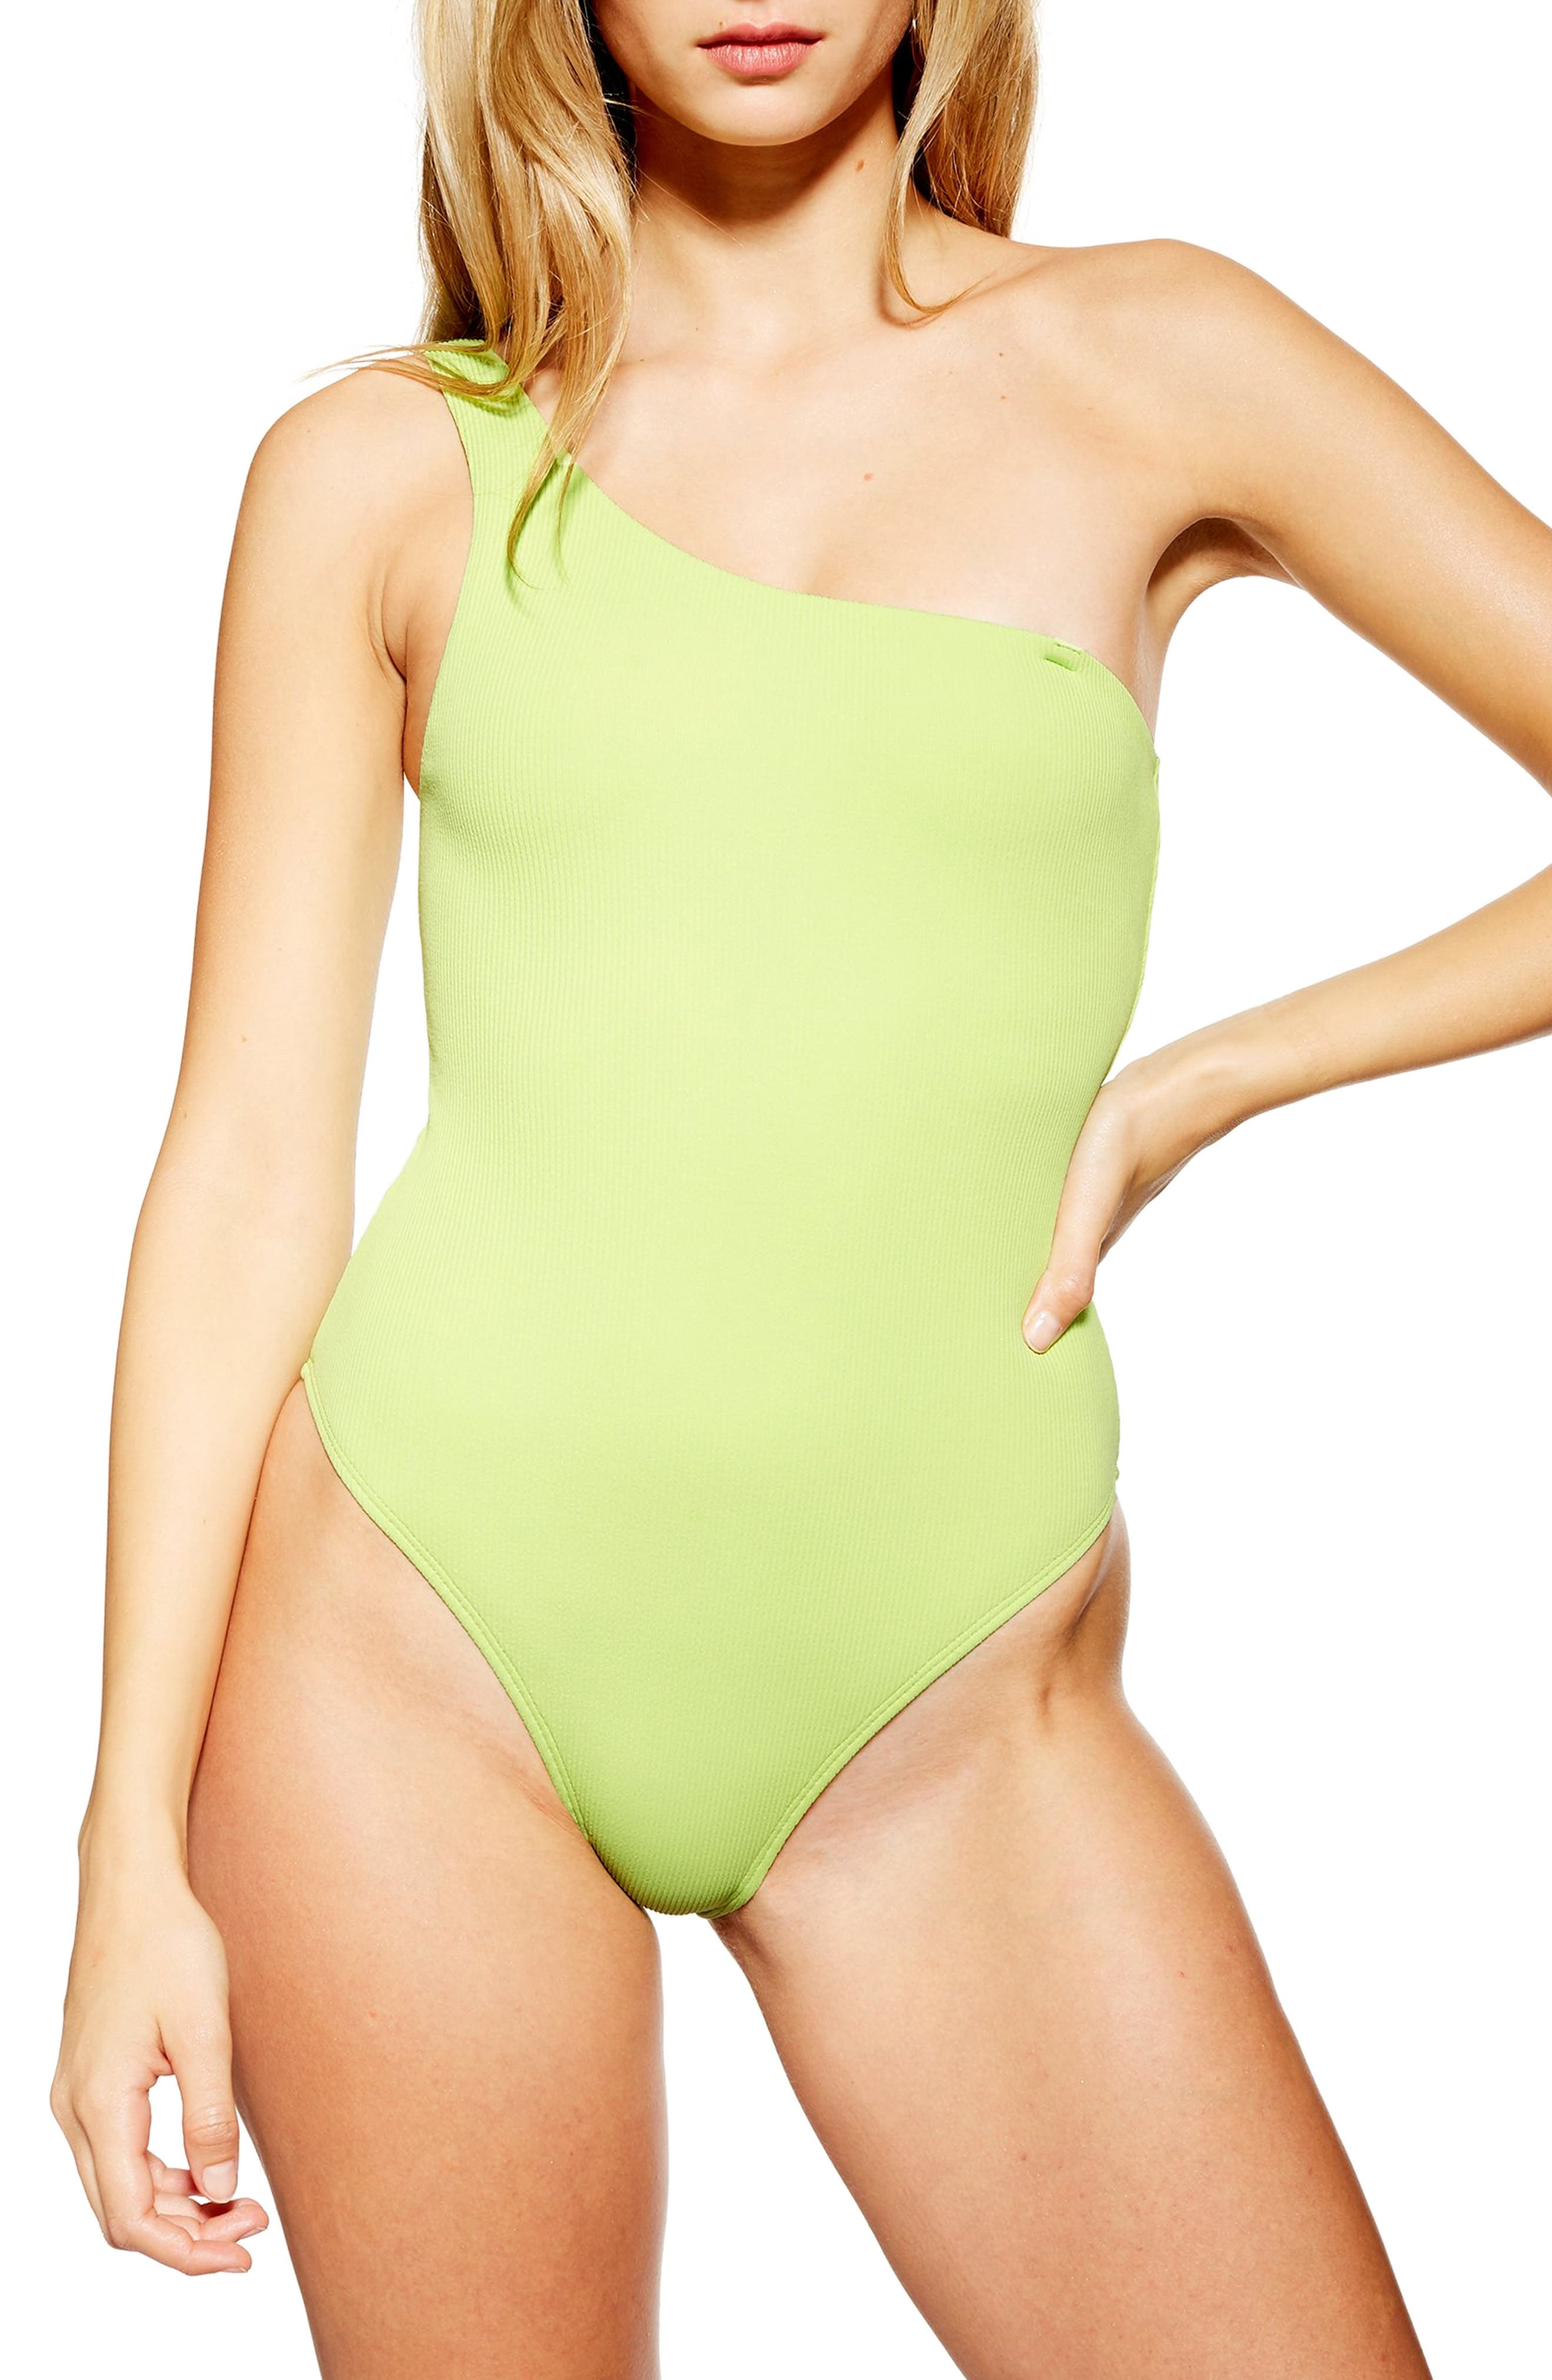 Topshop Ribbed One-Shoulder One-Piece Swimsuit, US (fits like 10-12) - Green